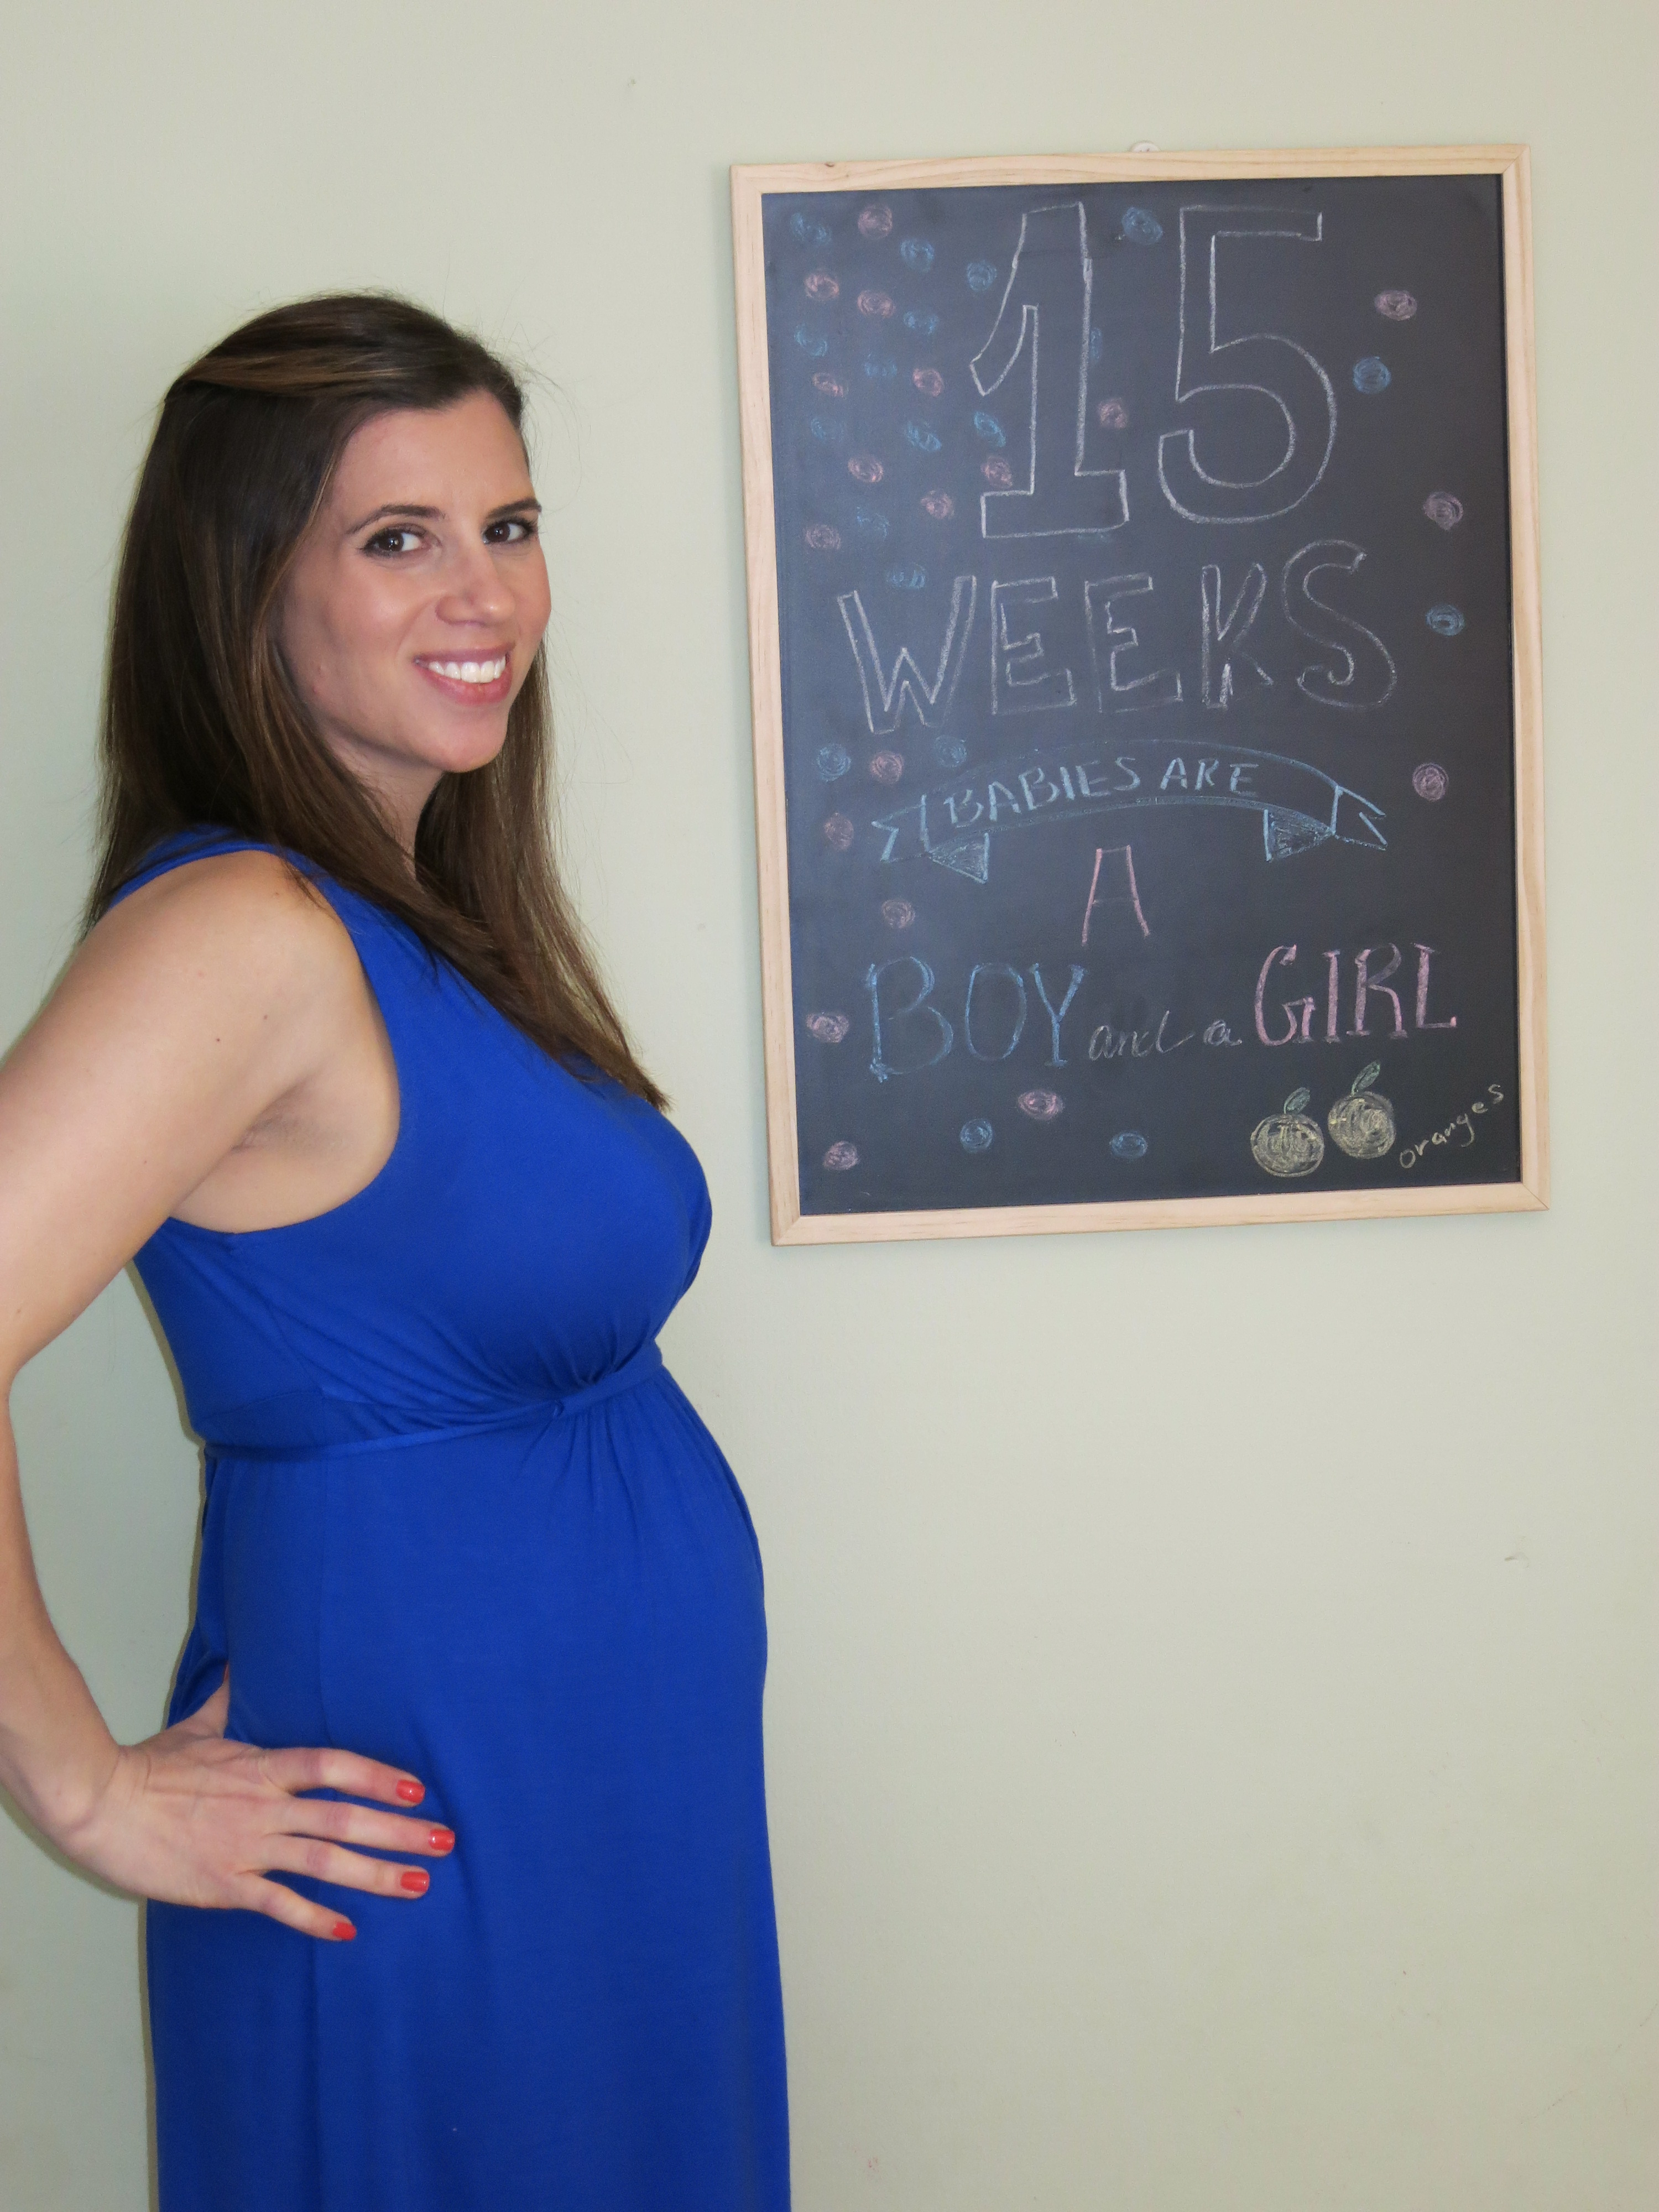 15 Weeks Mothers Day Gender Reveal To Family